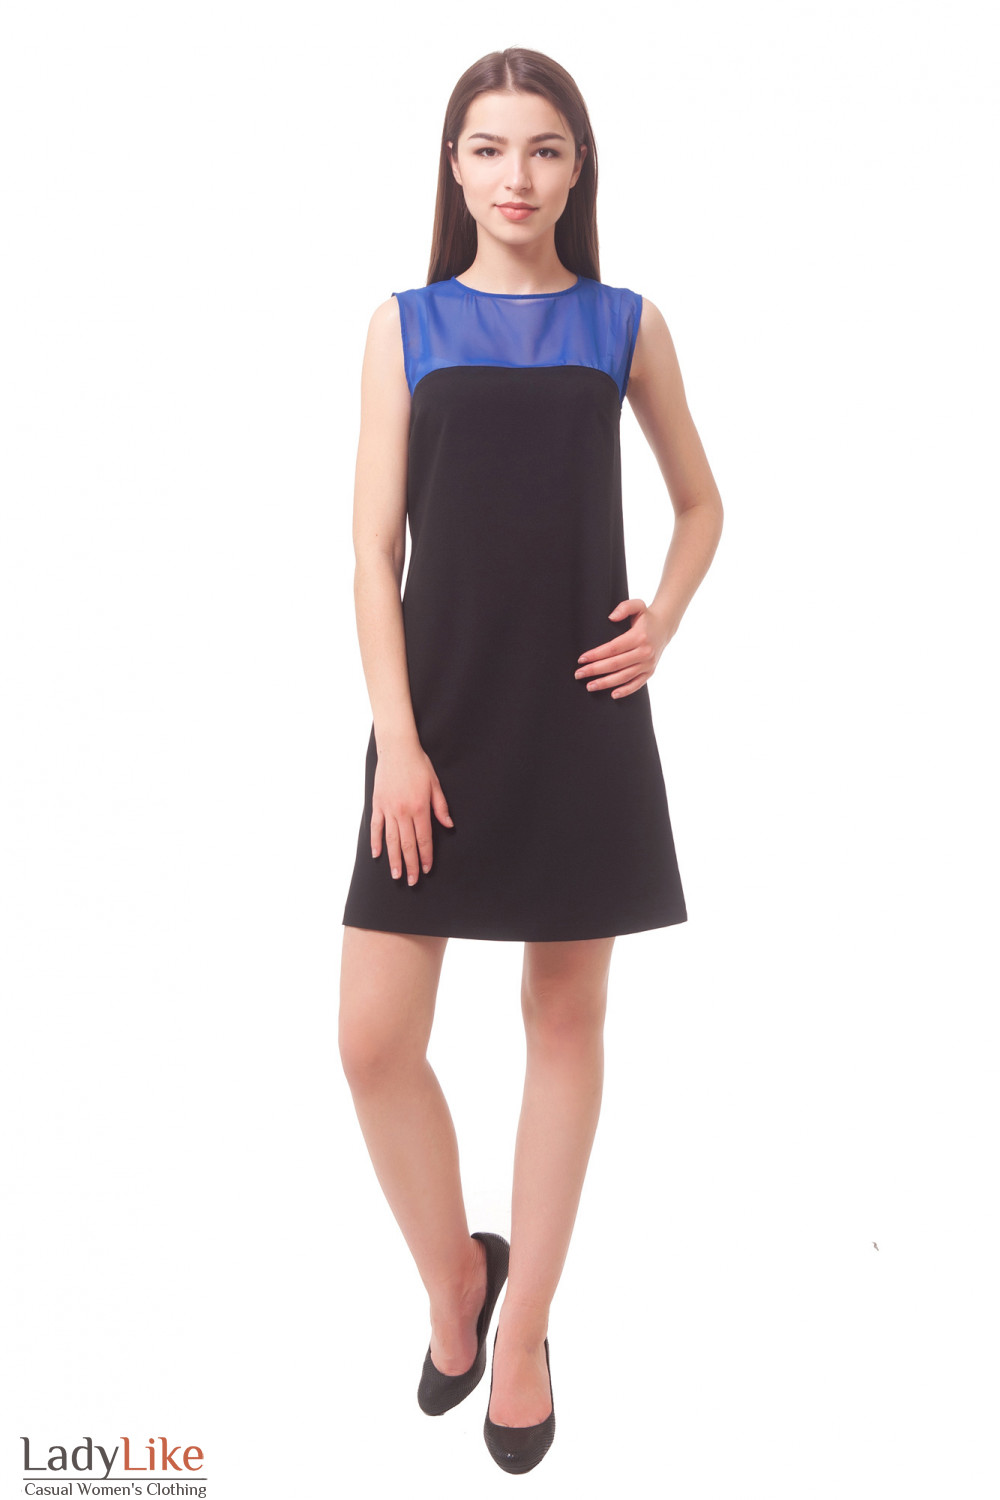 Buy dress with blue insert Business women's clothing